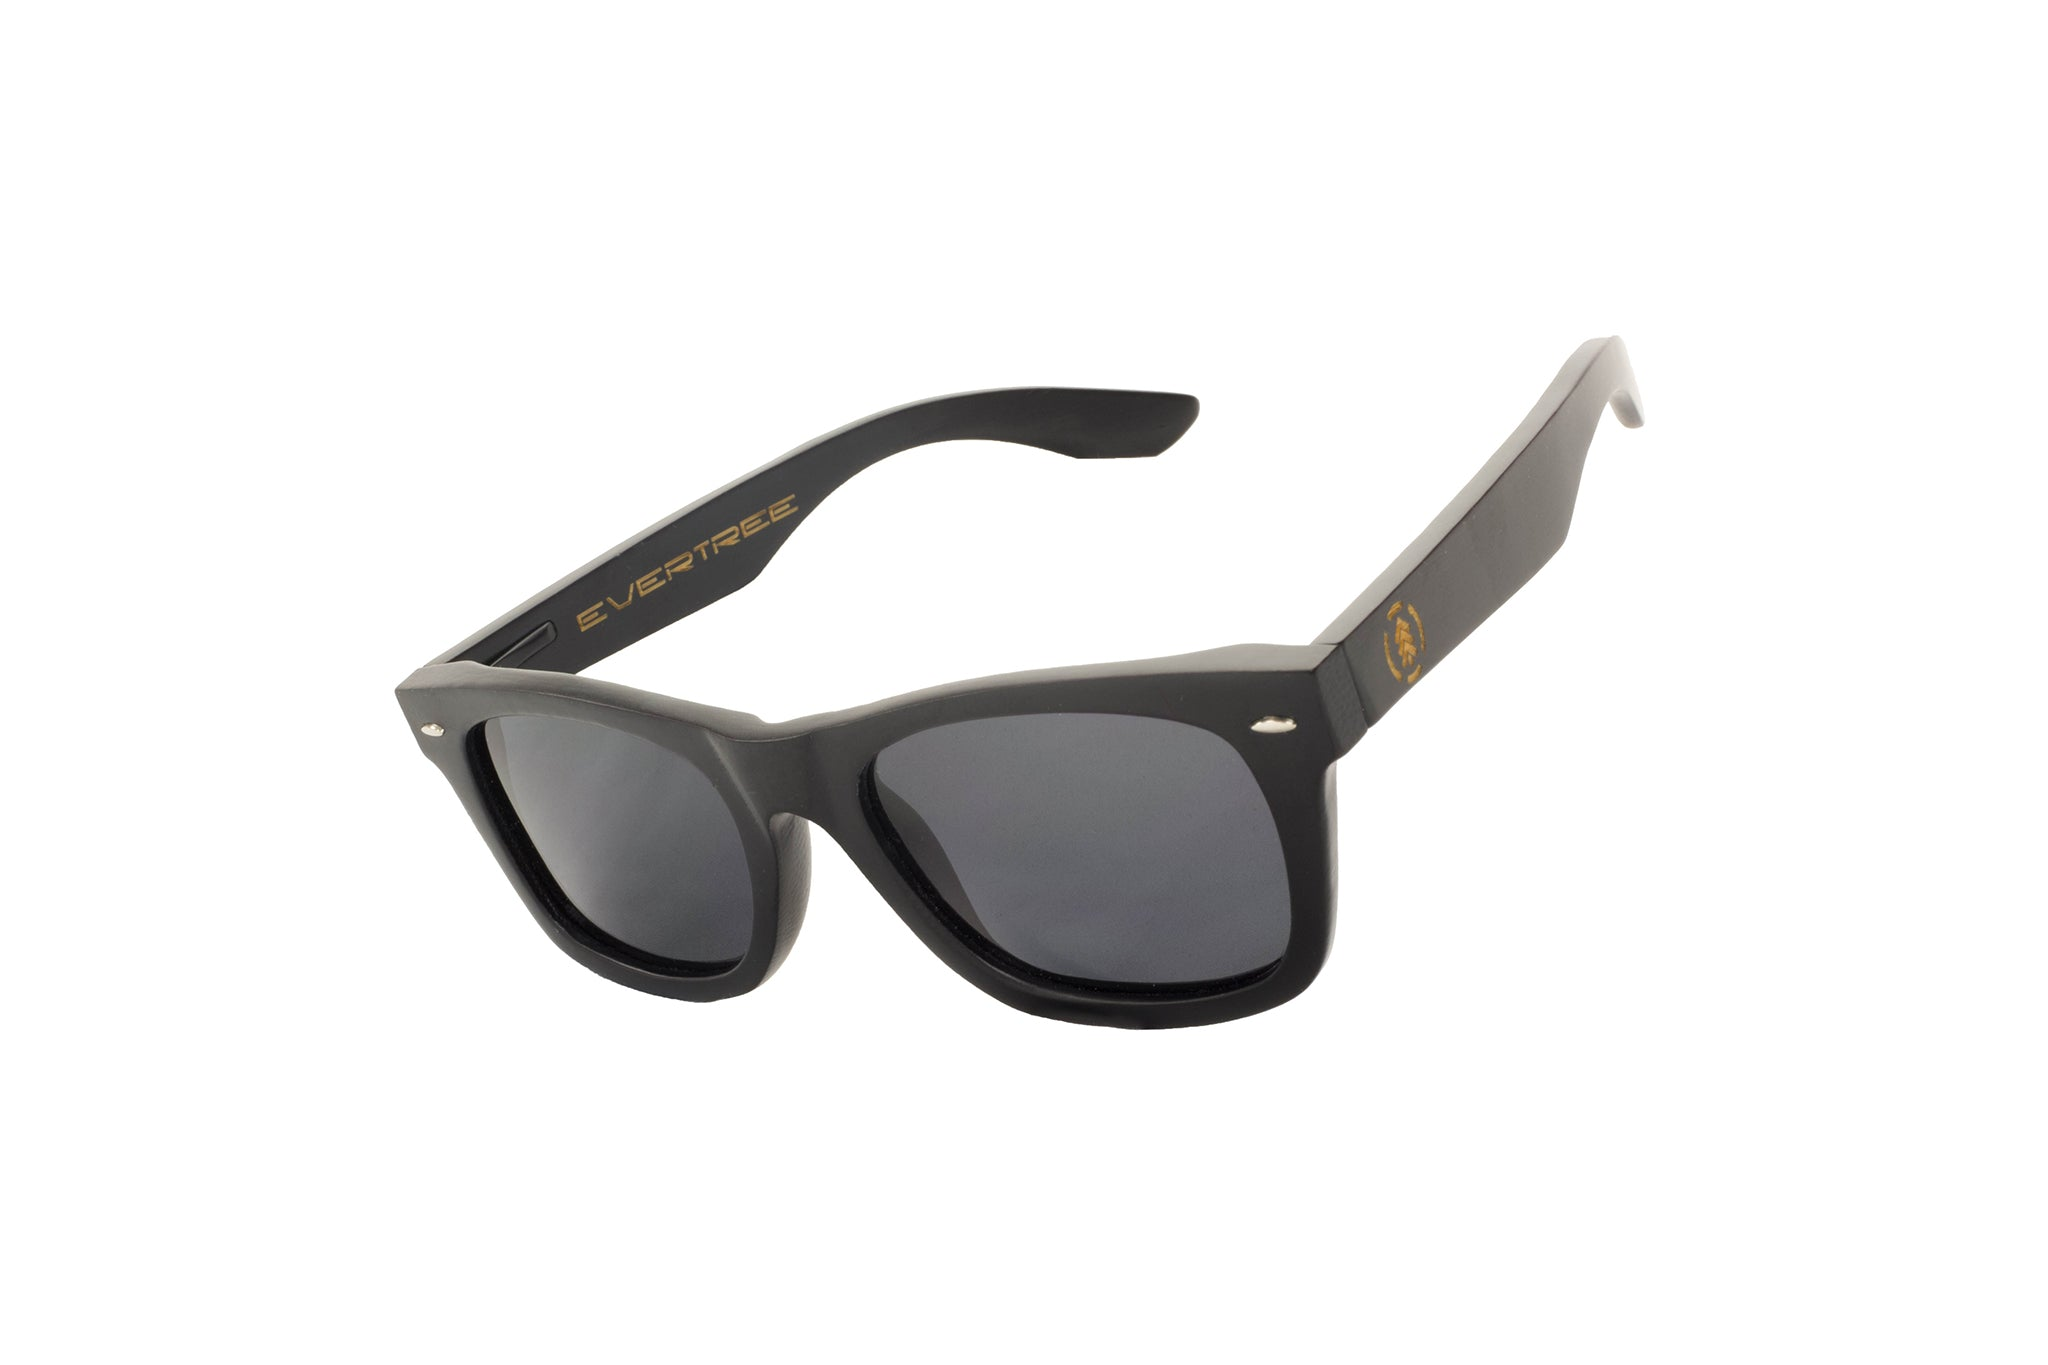 e7a6f2d31ce7 Black Bamboo Wood Sunglasses  Midnight Black Black Lens (WFE ...